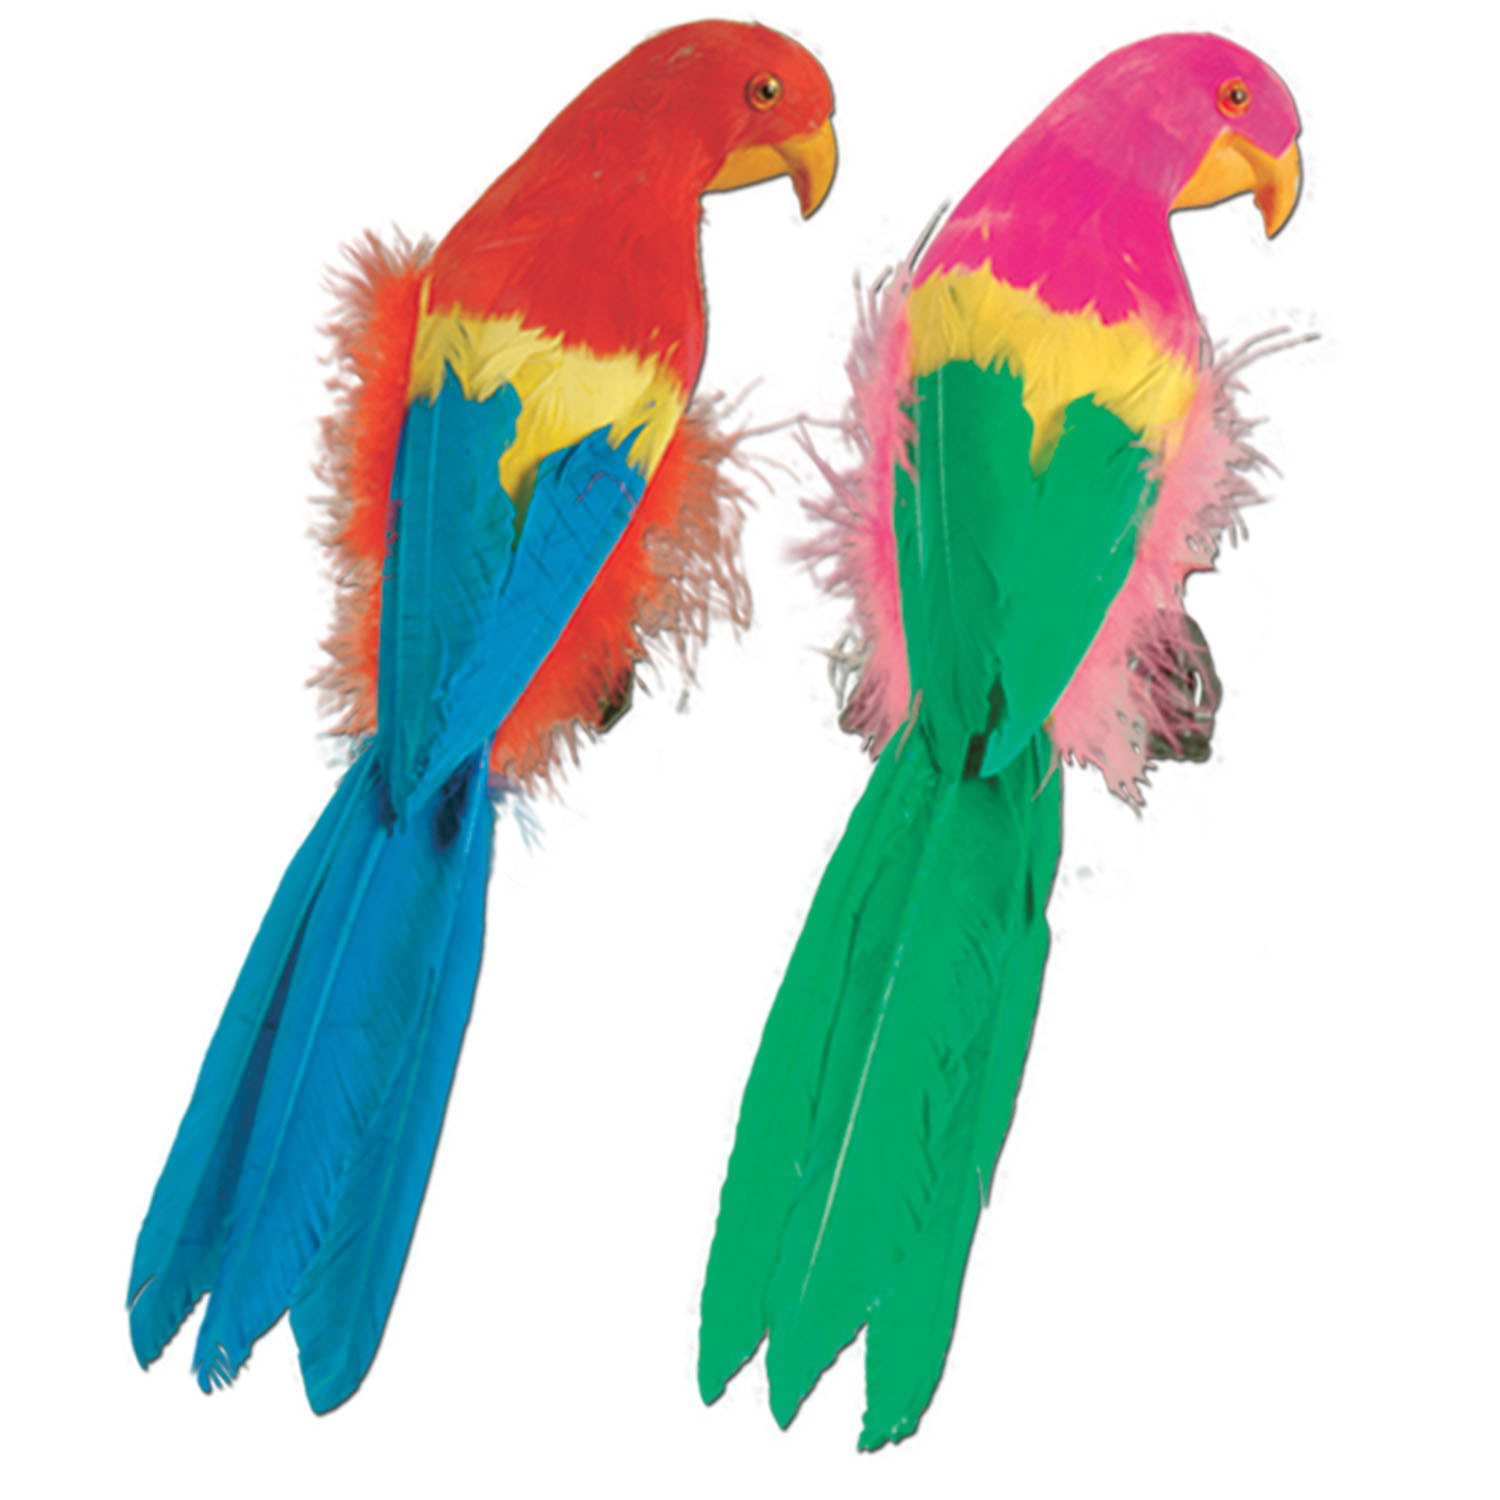 Feathered Parrots (Pack of 6) jungle, luau, feather, parrots, birds, pirate